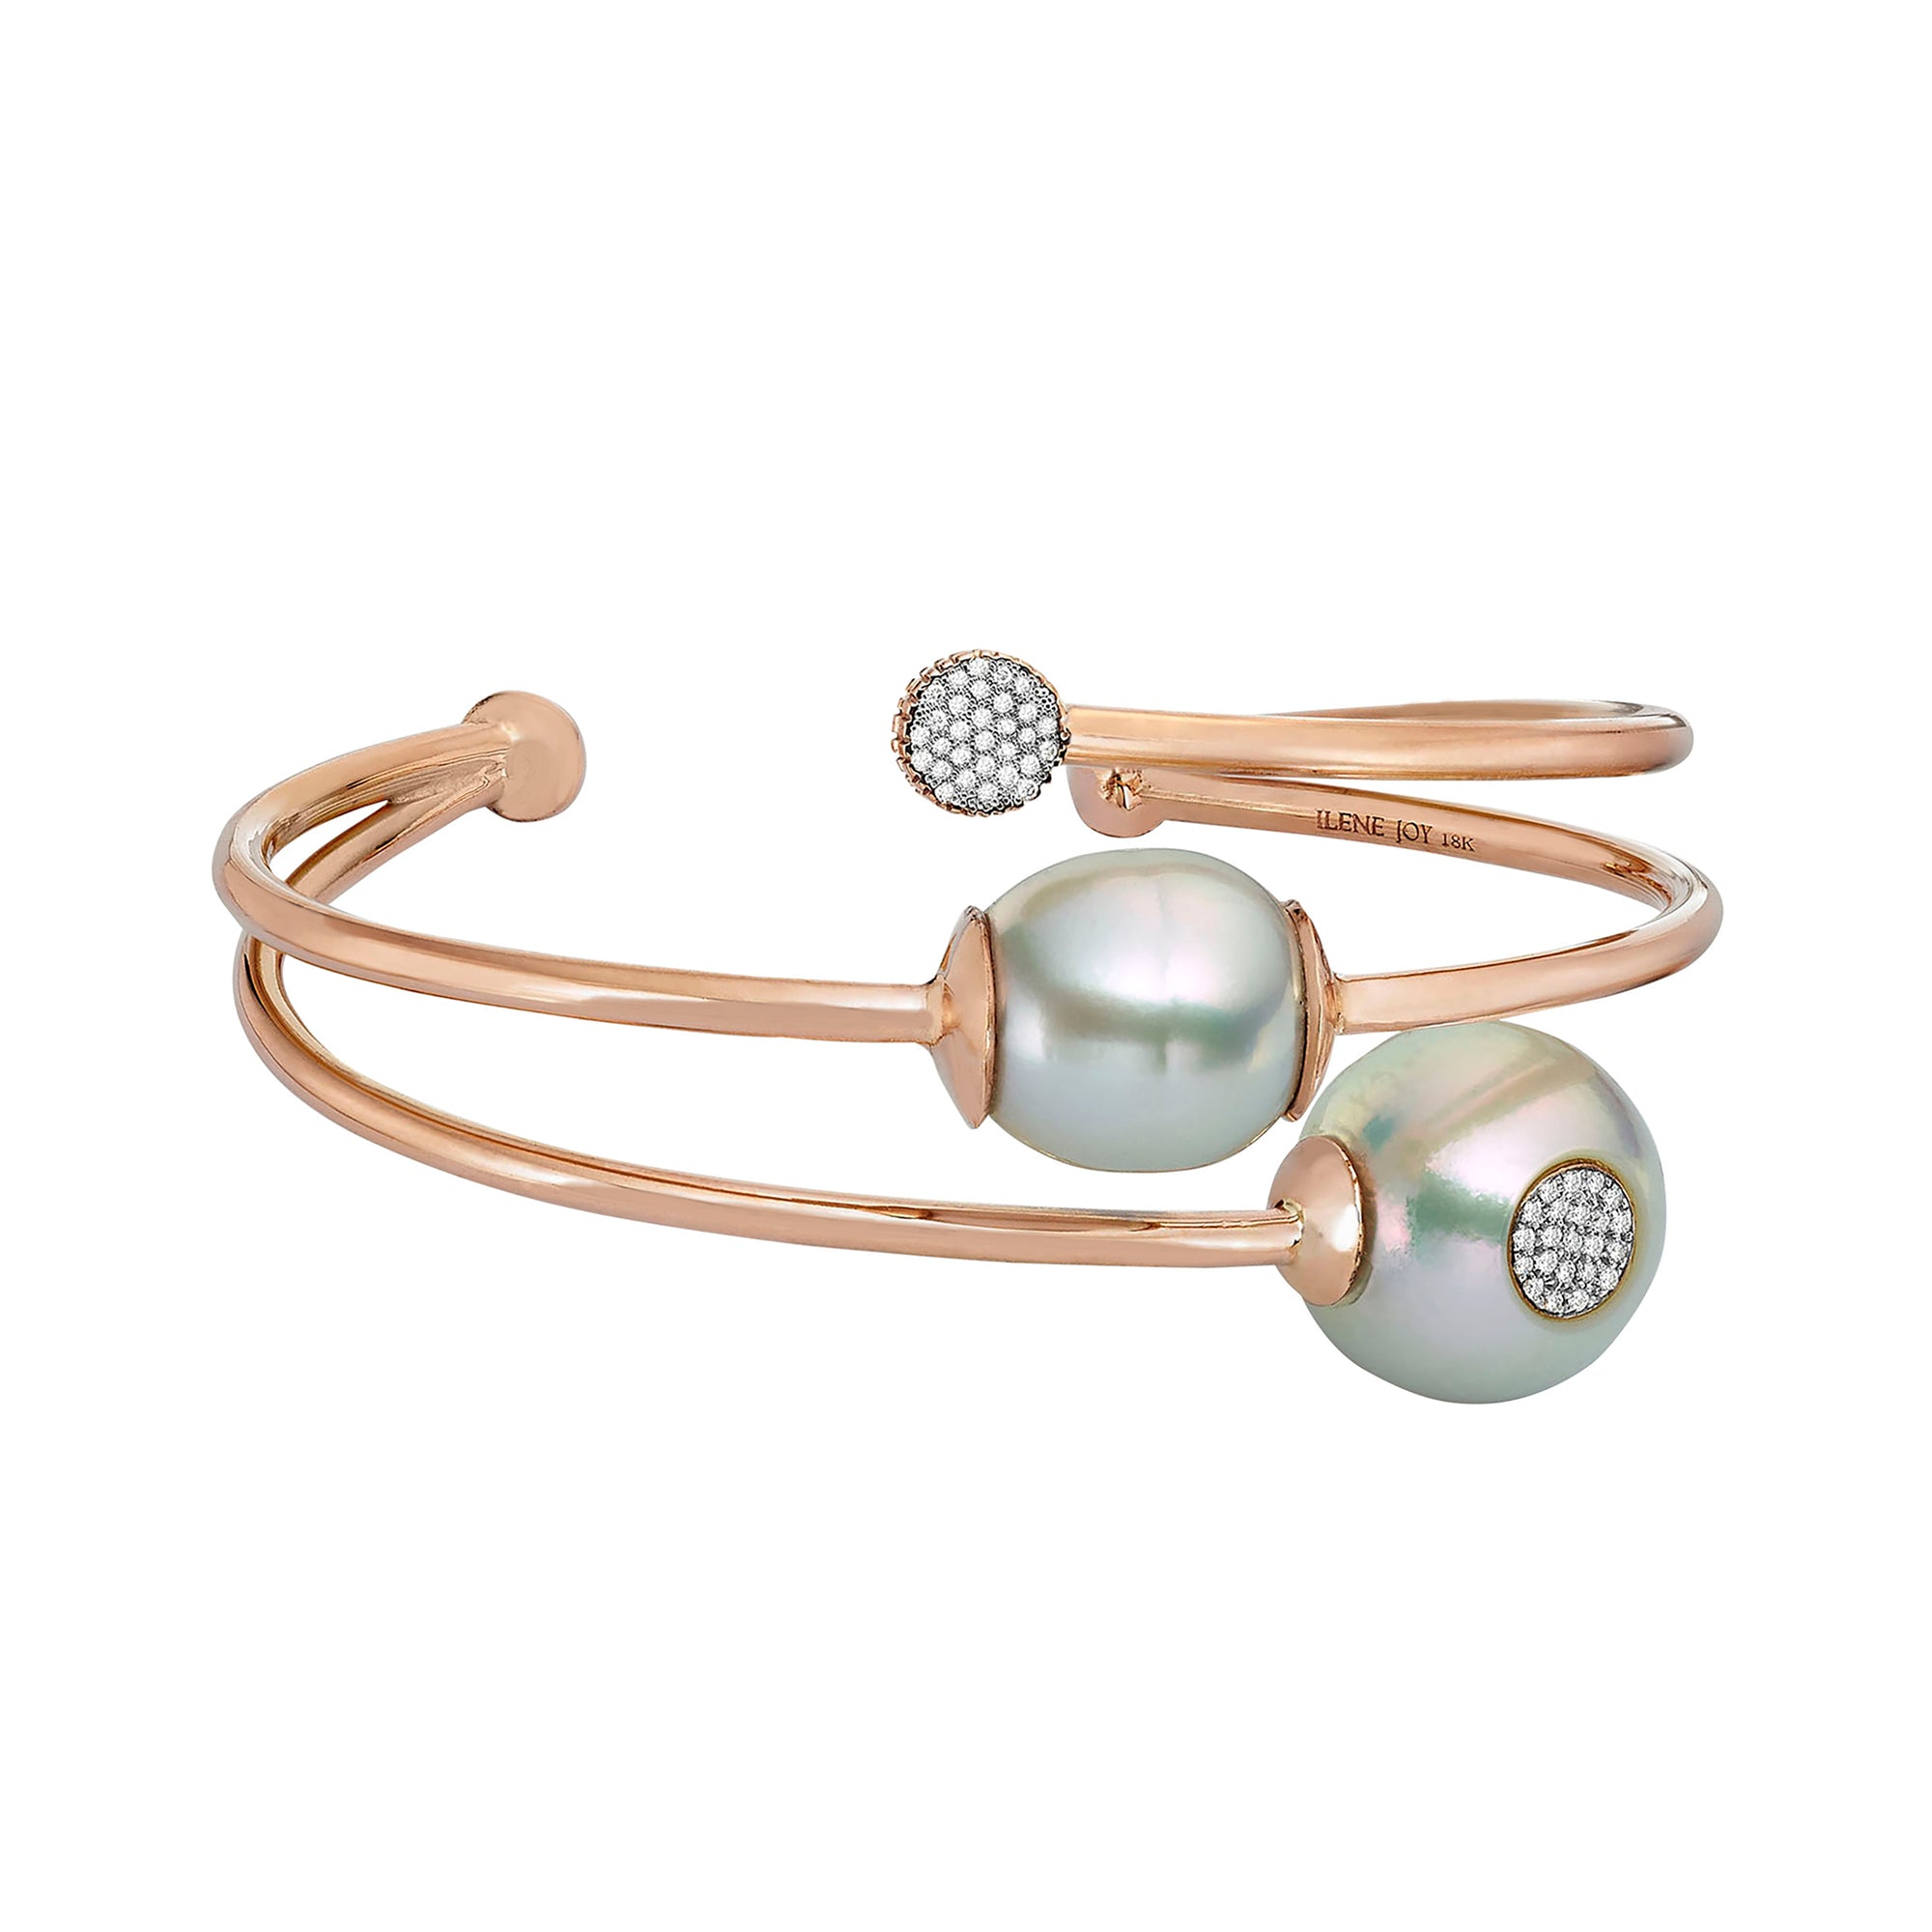 Duet Third Wheel Cuff - Ilene Joy - Bracelets | Broken English Jewelry